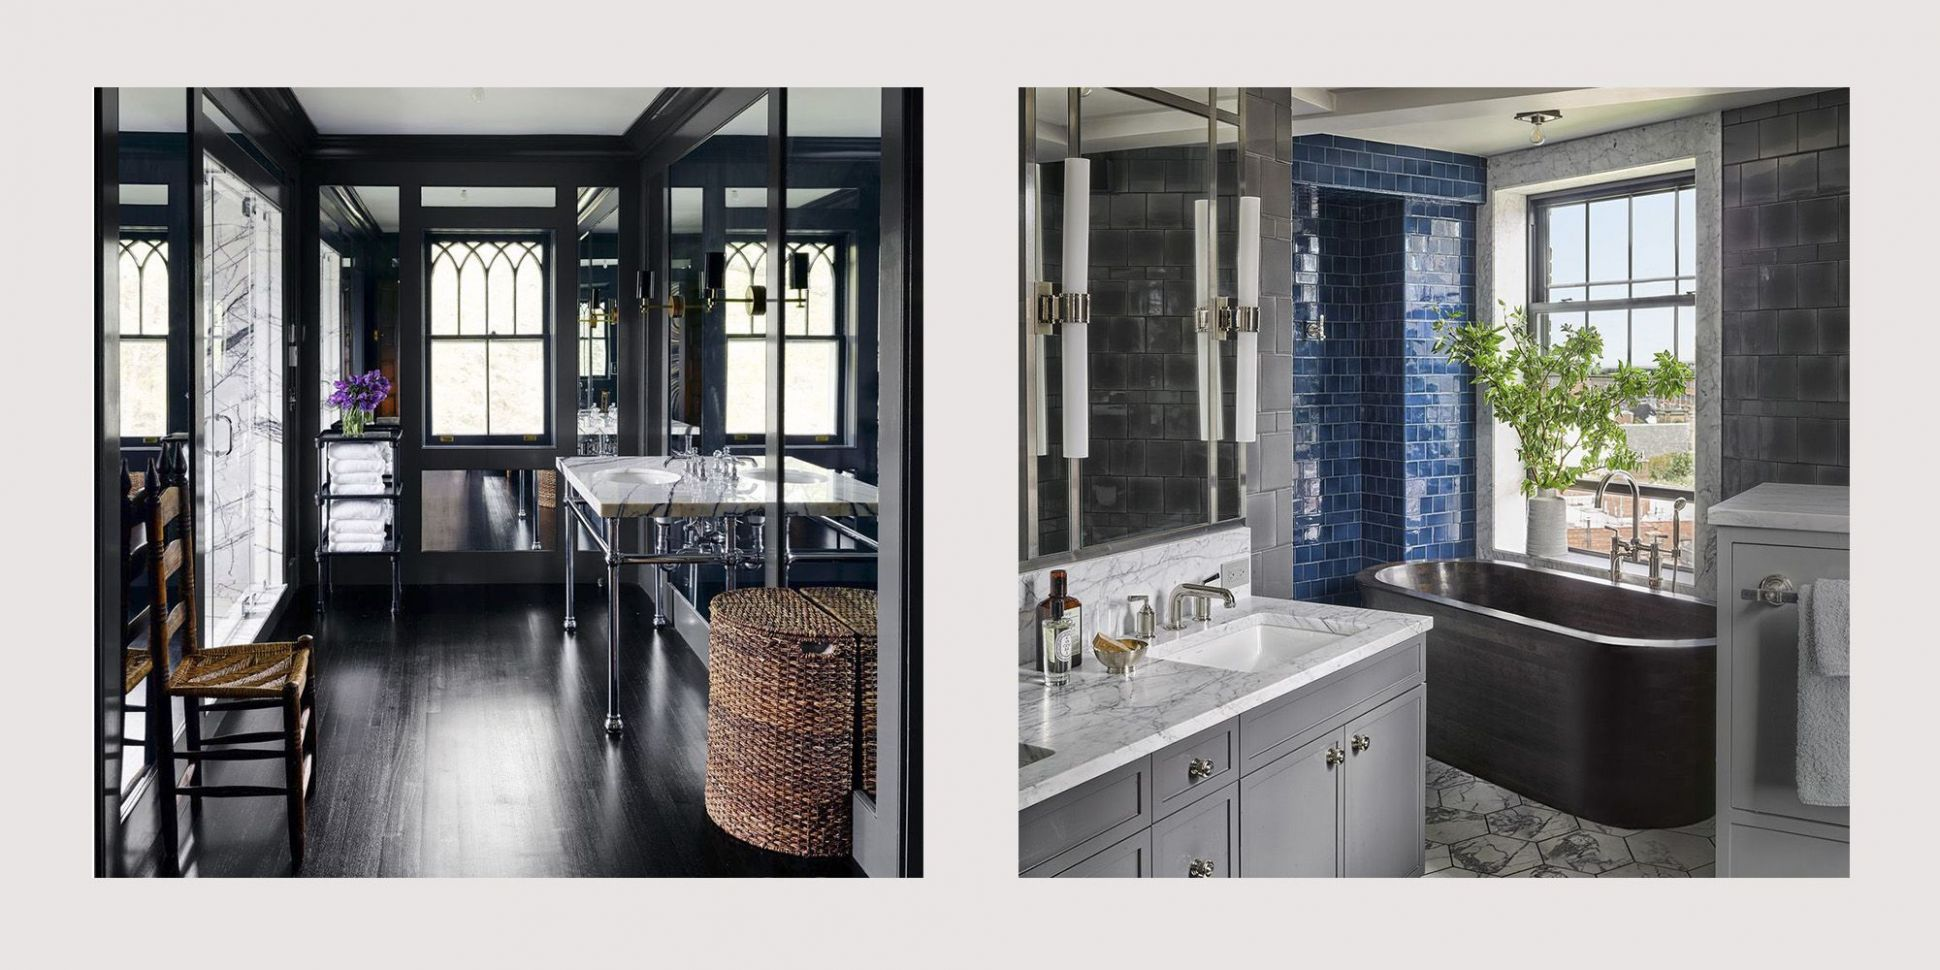 9 Master Bathroom Ideas - Best Bathroom Designs - bathroom ideas master